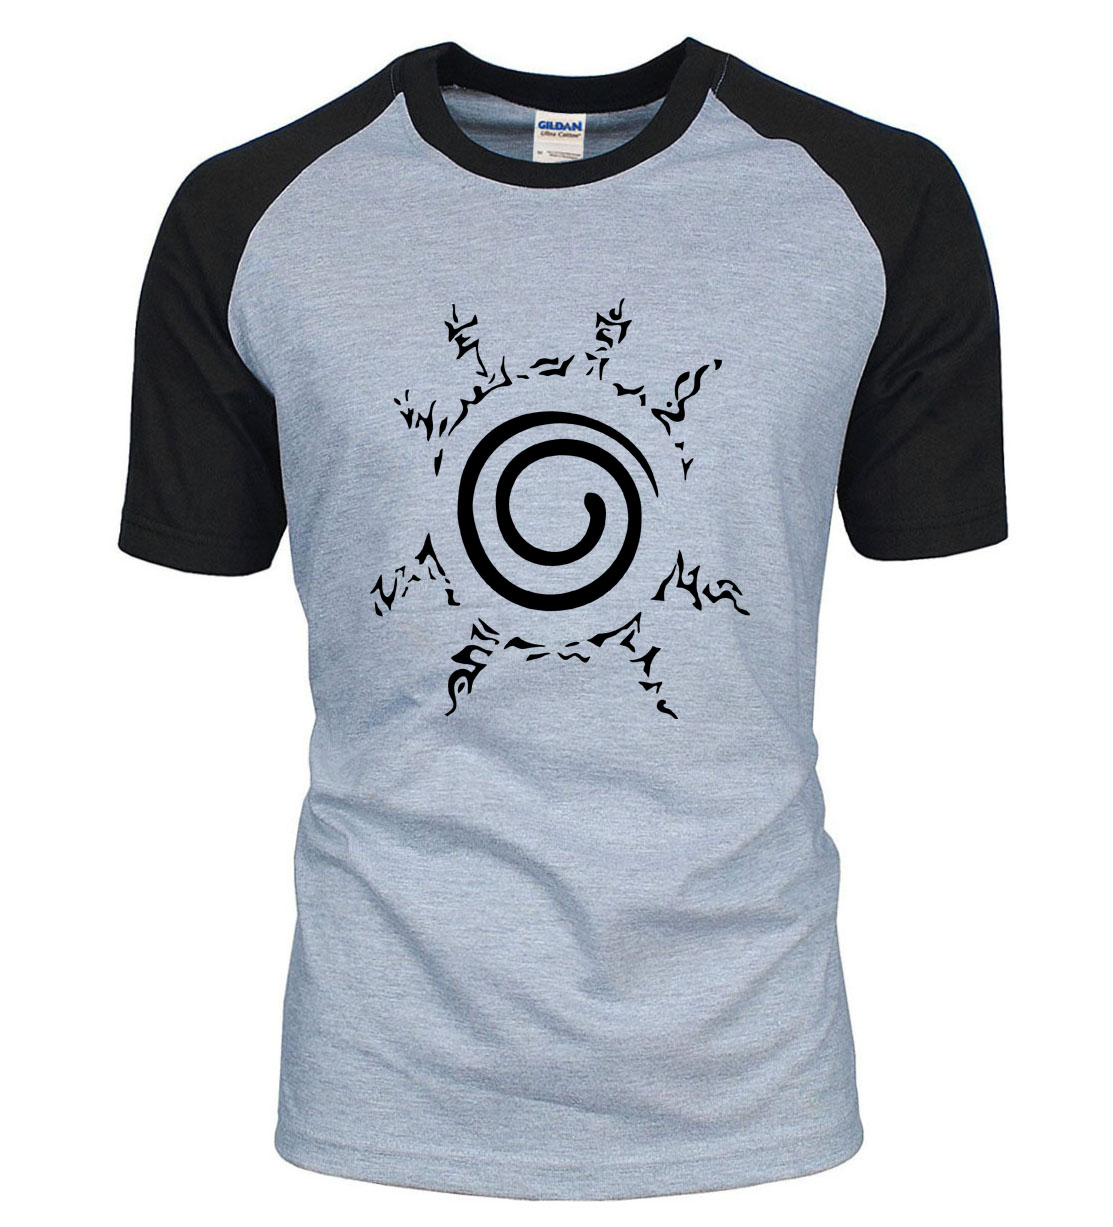 New Arrival Anime Naruto Uzumaki Naruto t shirt 2019 summer 100% cotton raglan men t-shirt fashion short sleeve shirt for fans